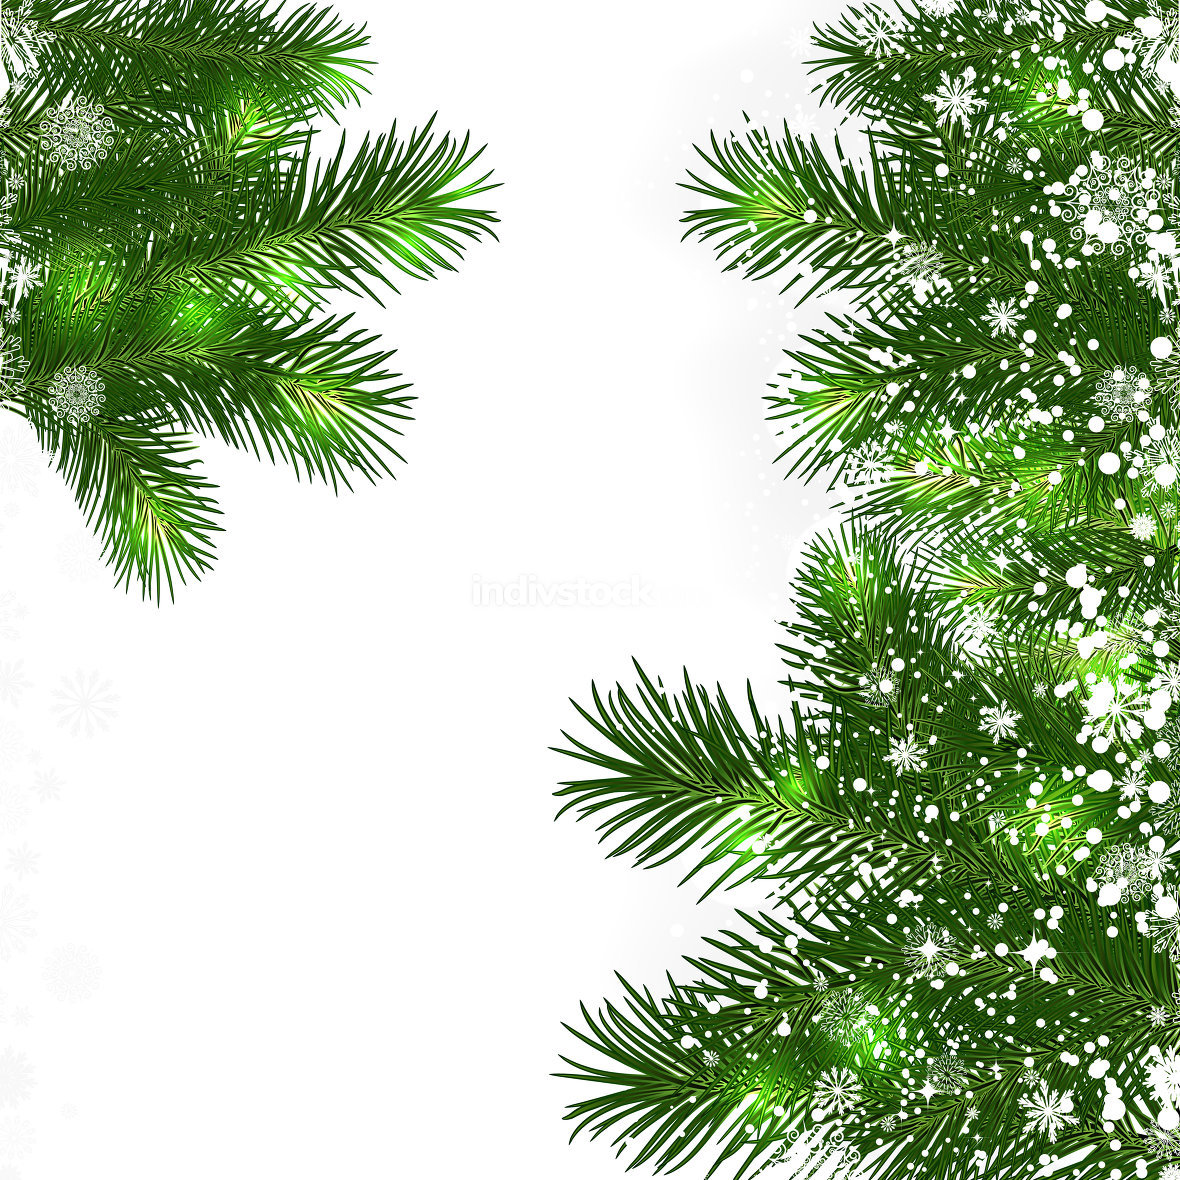 Christmas background with green branches of Christmas tree.